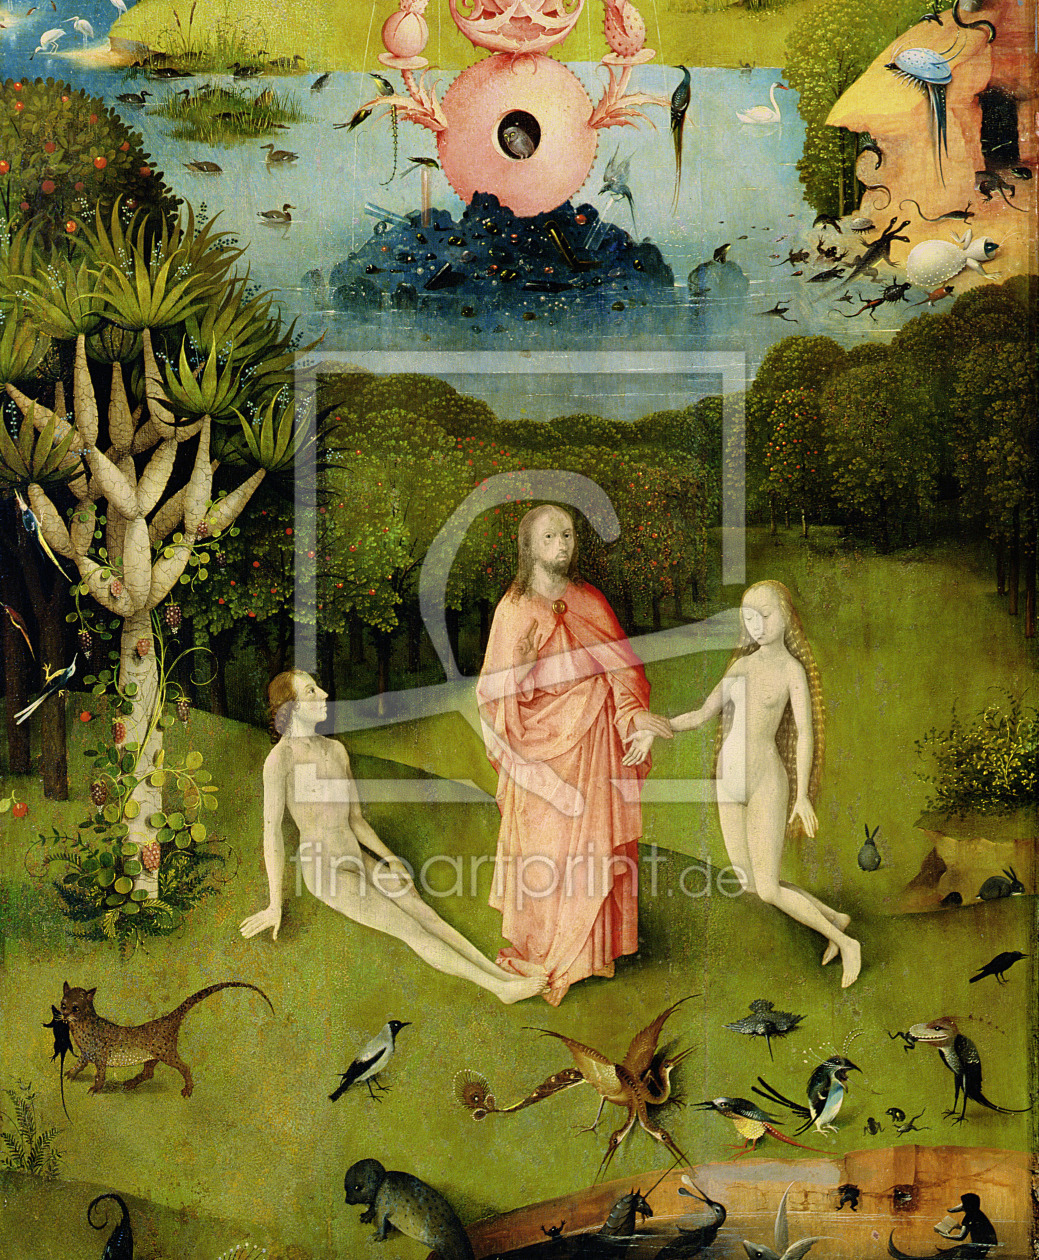 Bild-Nr.: 31000087 The Garden of Earthly Delights: The Garden of Eden, left wing of triptych, c.150 erstellt von Bosch, Hieronymus